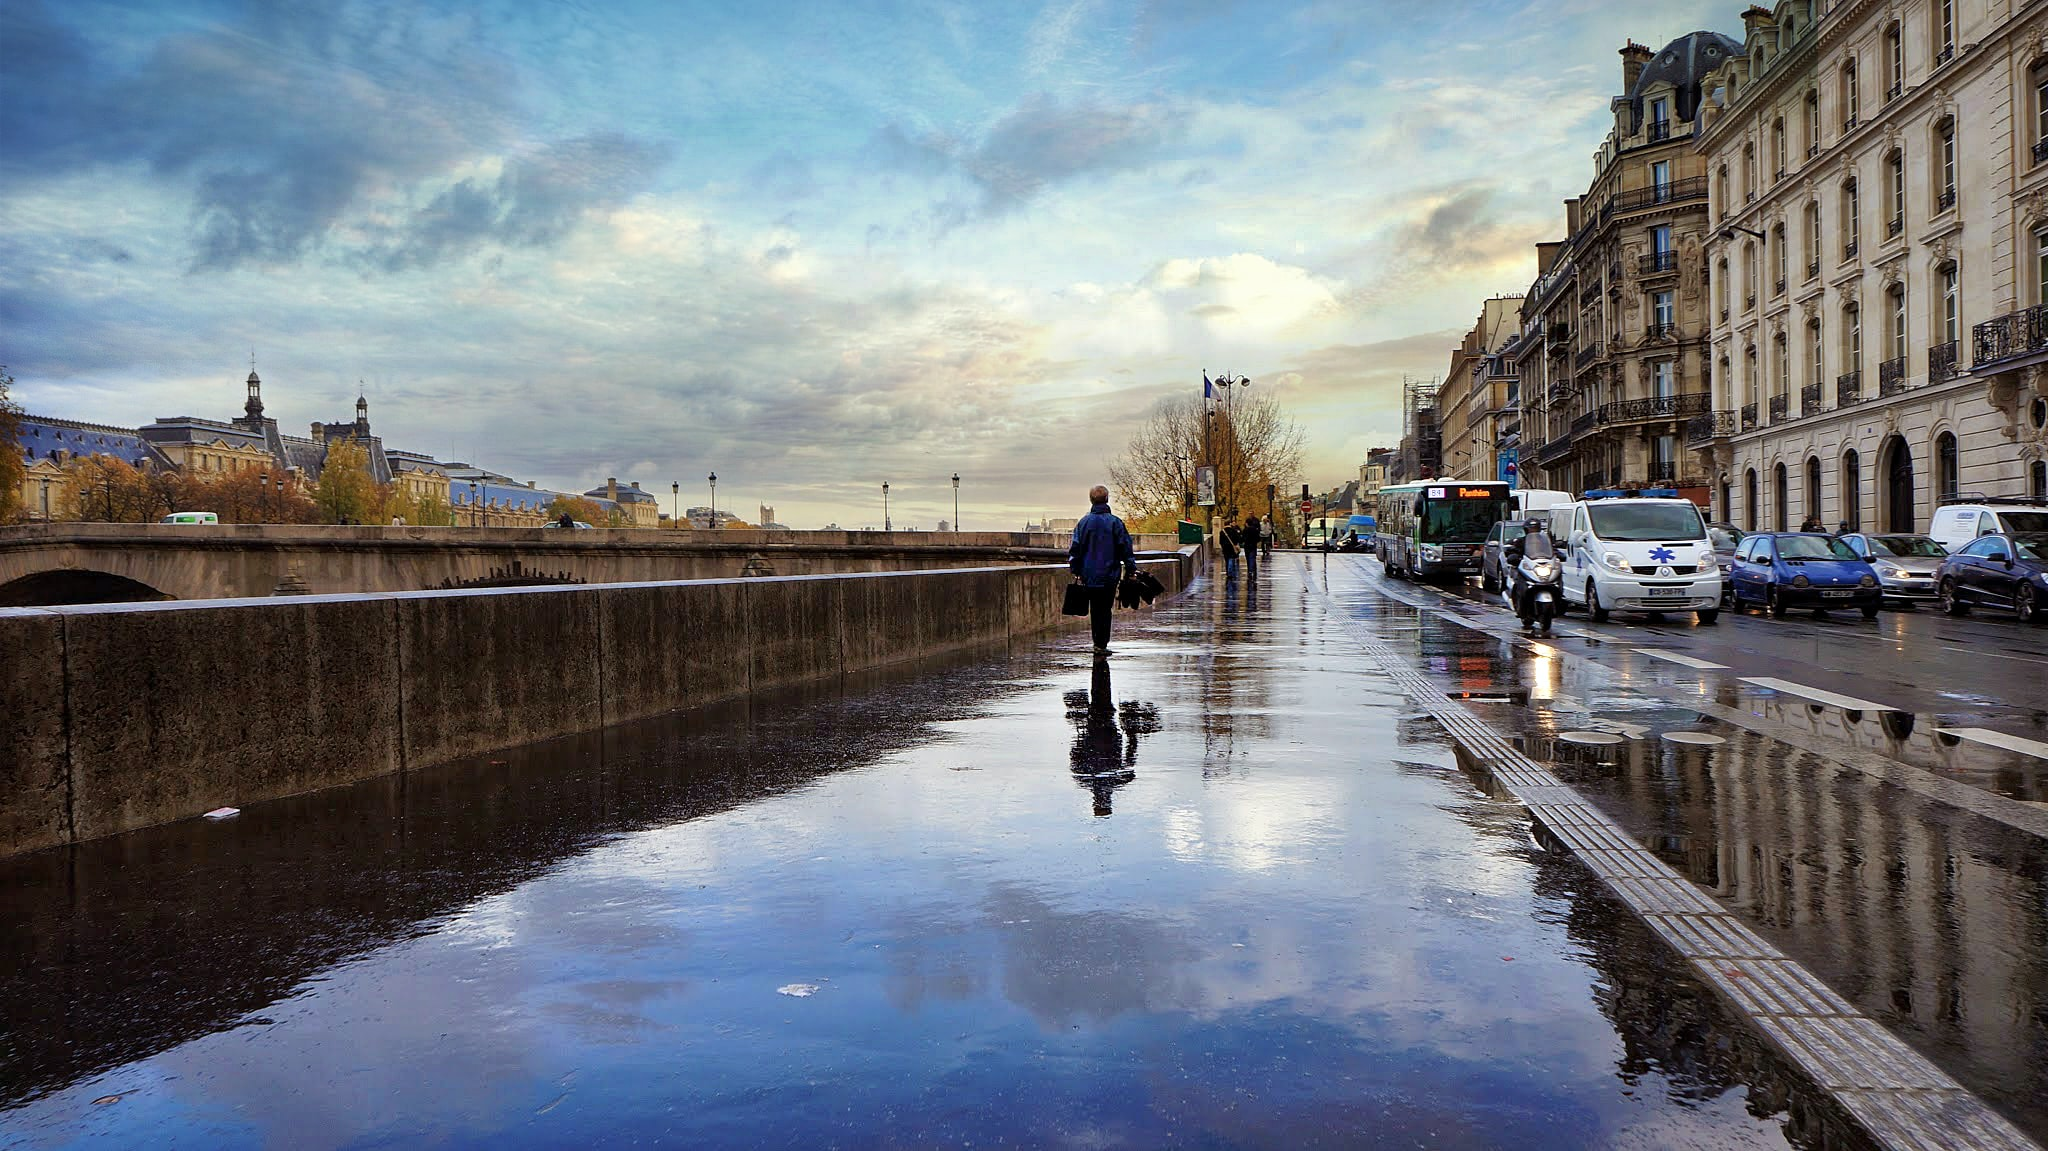 Wet sidewalk and busy daytime traffic on city street with reflection at Musée d'Orsay